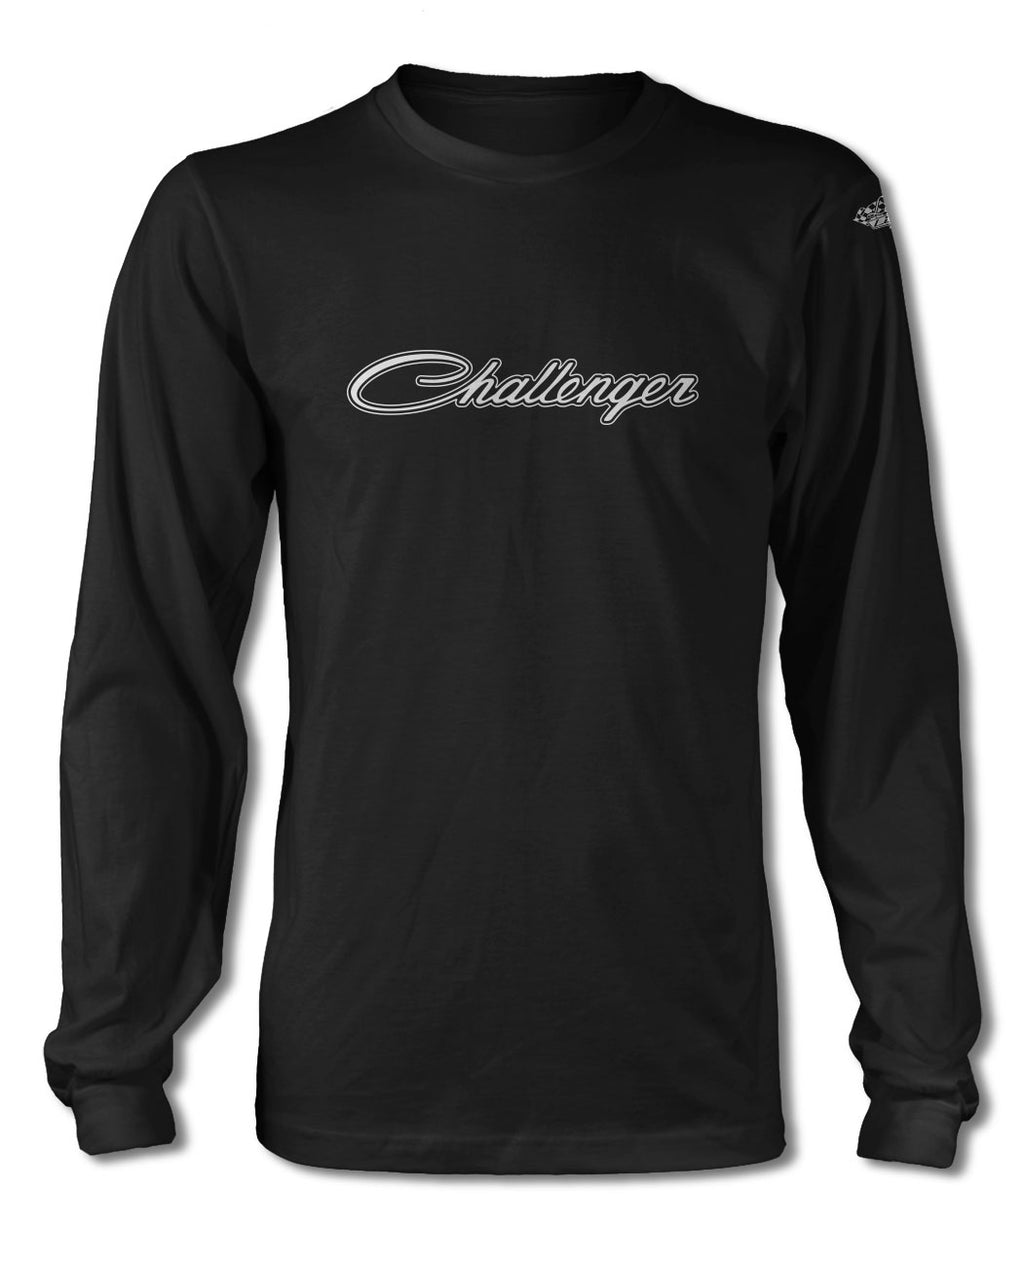 Dodge Challenger 1970 - 1974 Emblem T-Shirt - Long Sleeves - Emblem